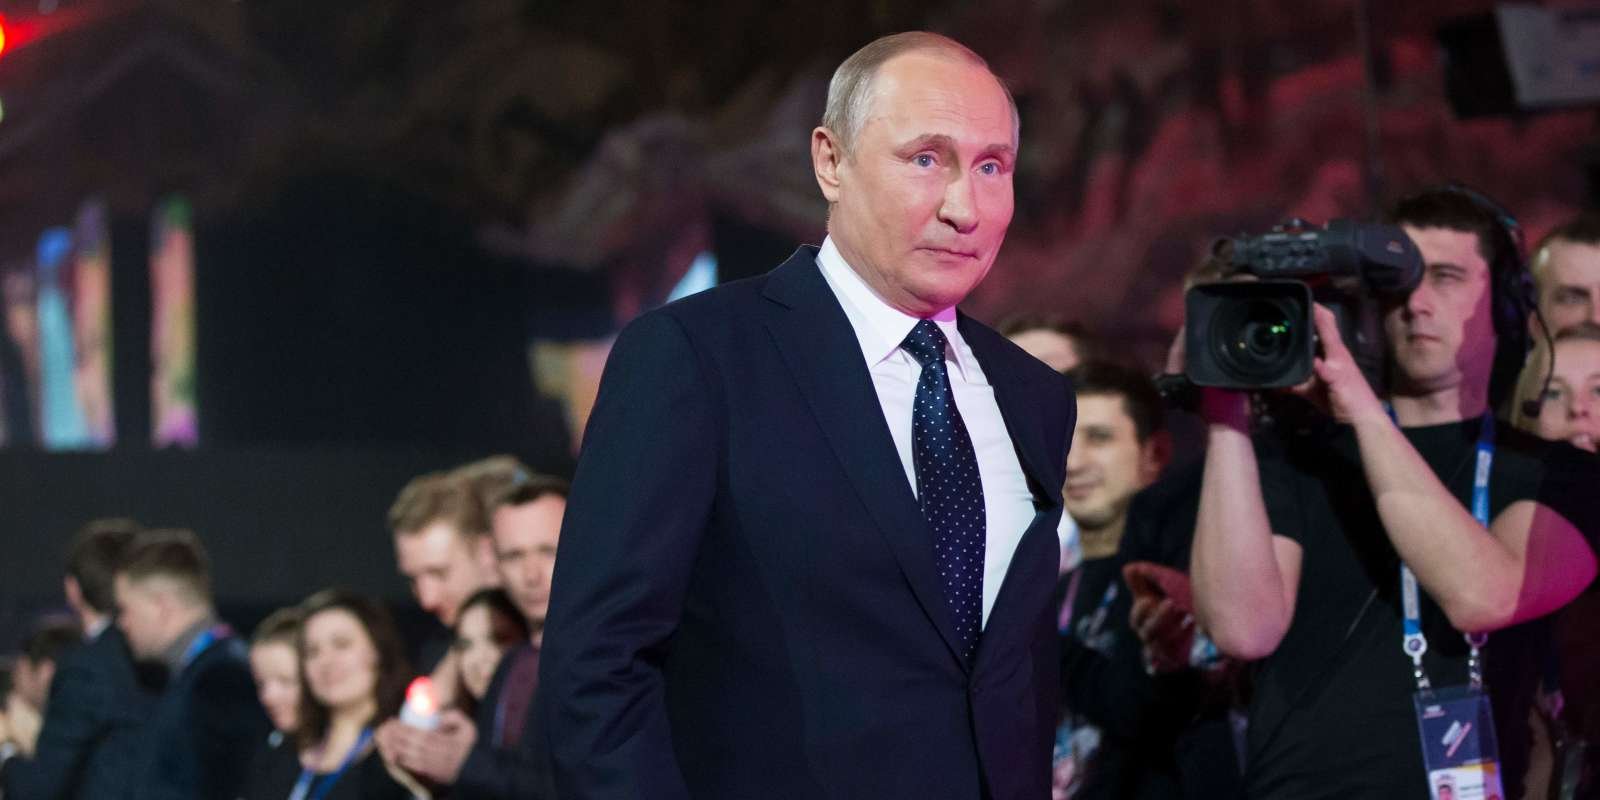 Russian President Vladimir Putin arrives to give a speech at a youth forum